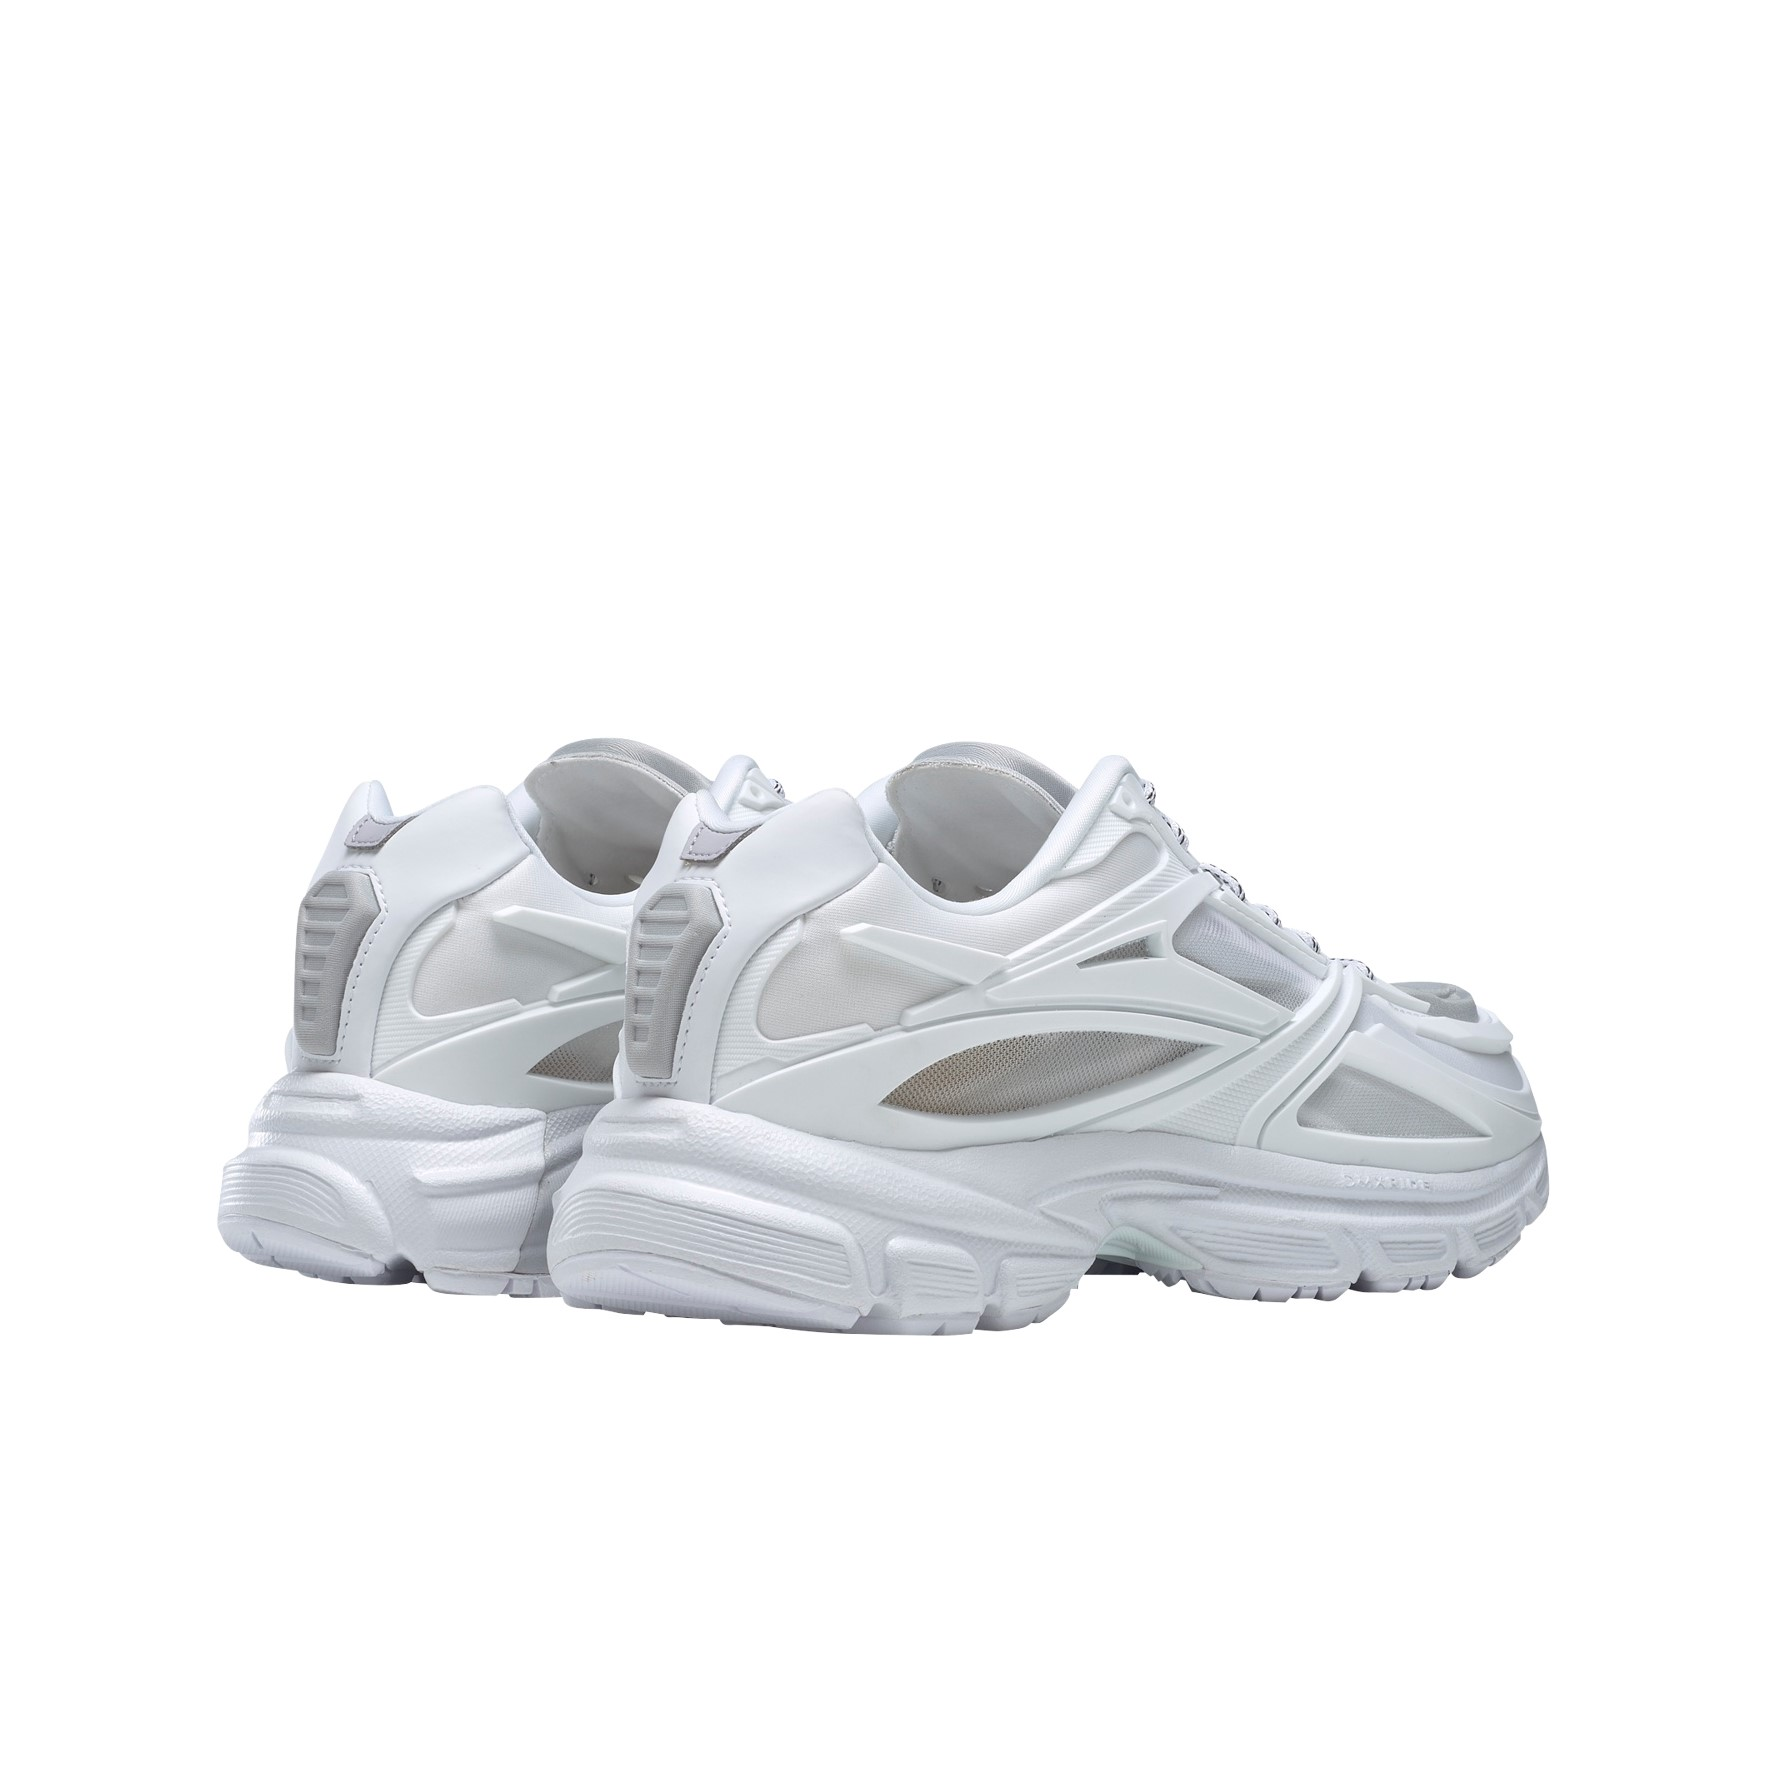 Reebok premier road white